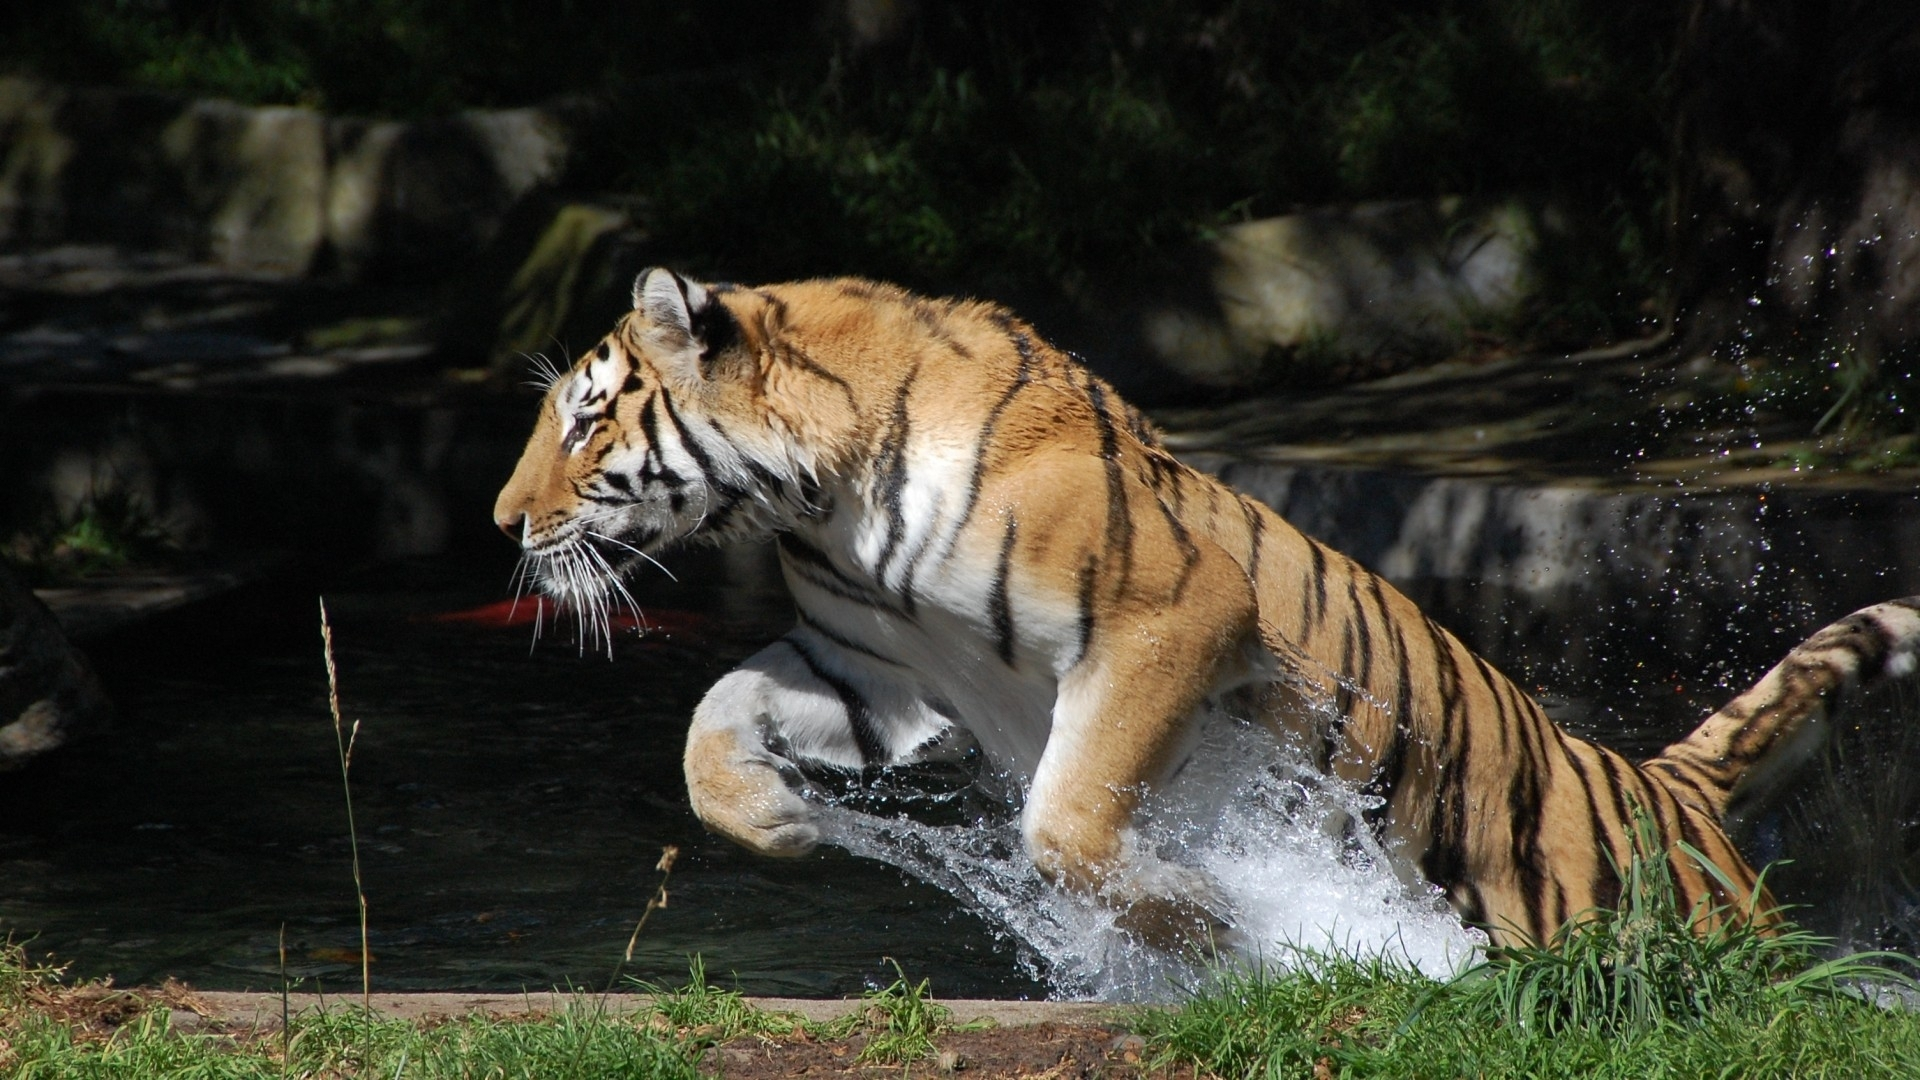 45203 download wallpaper Animals, Tigers screensavers and pictures for free